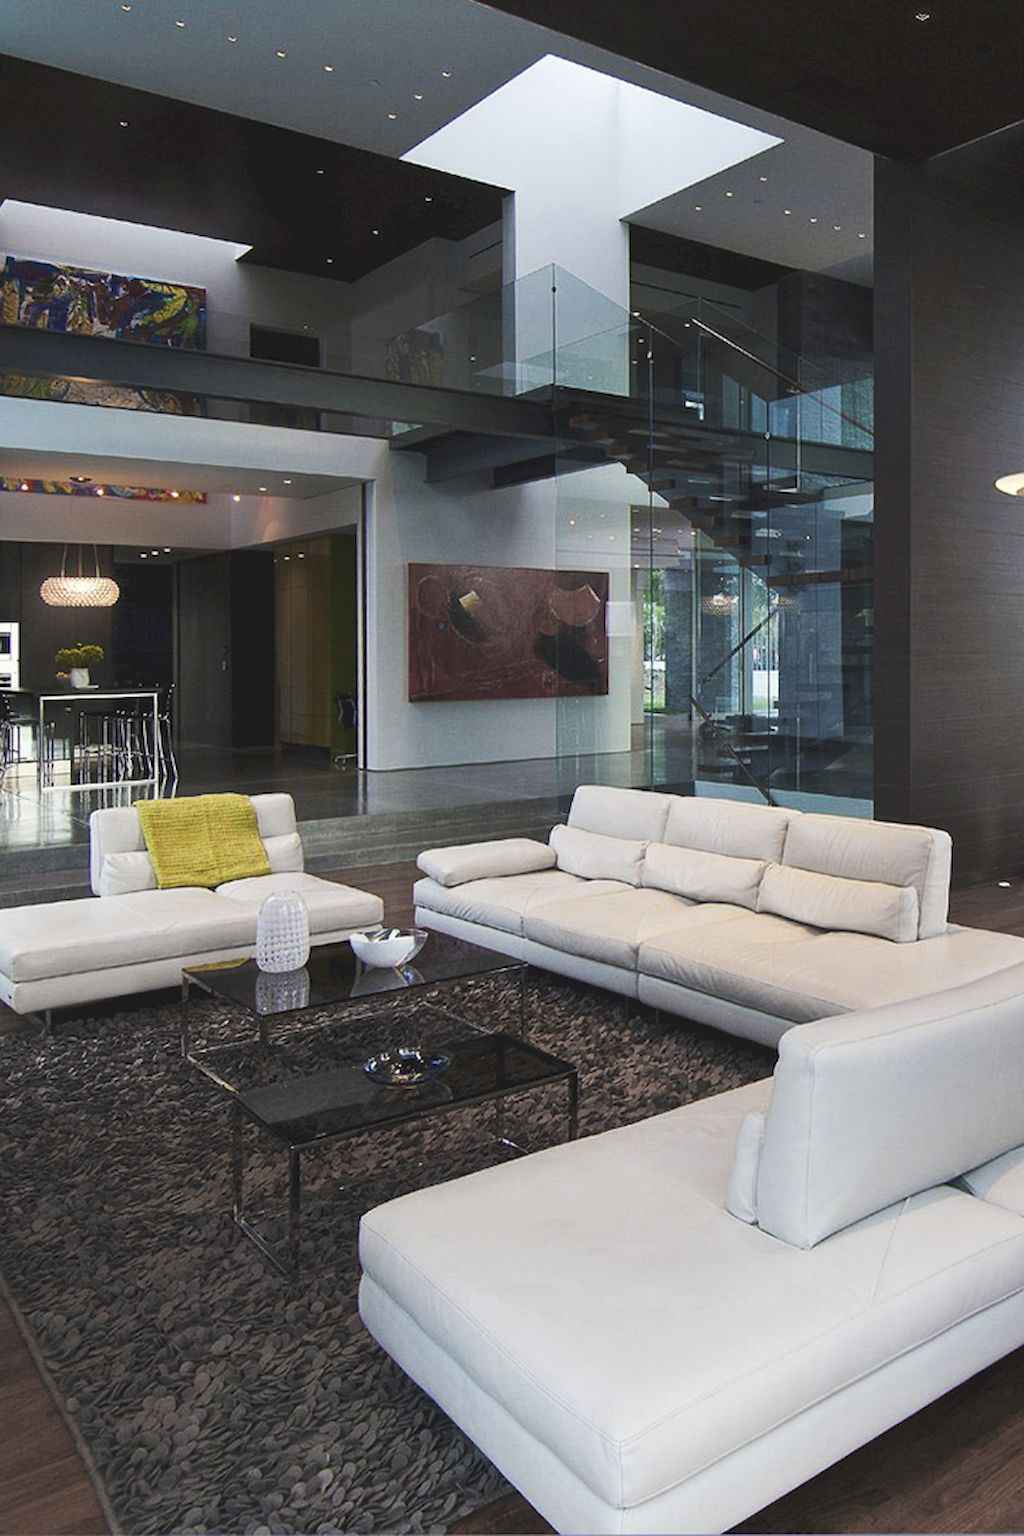 50 Stunning Interior Design Ideas That Will Take Your House To Another Level: 80 Luxury Interior Design Ideas That Will Take Your House To Another Level (82)